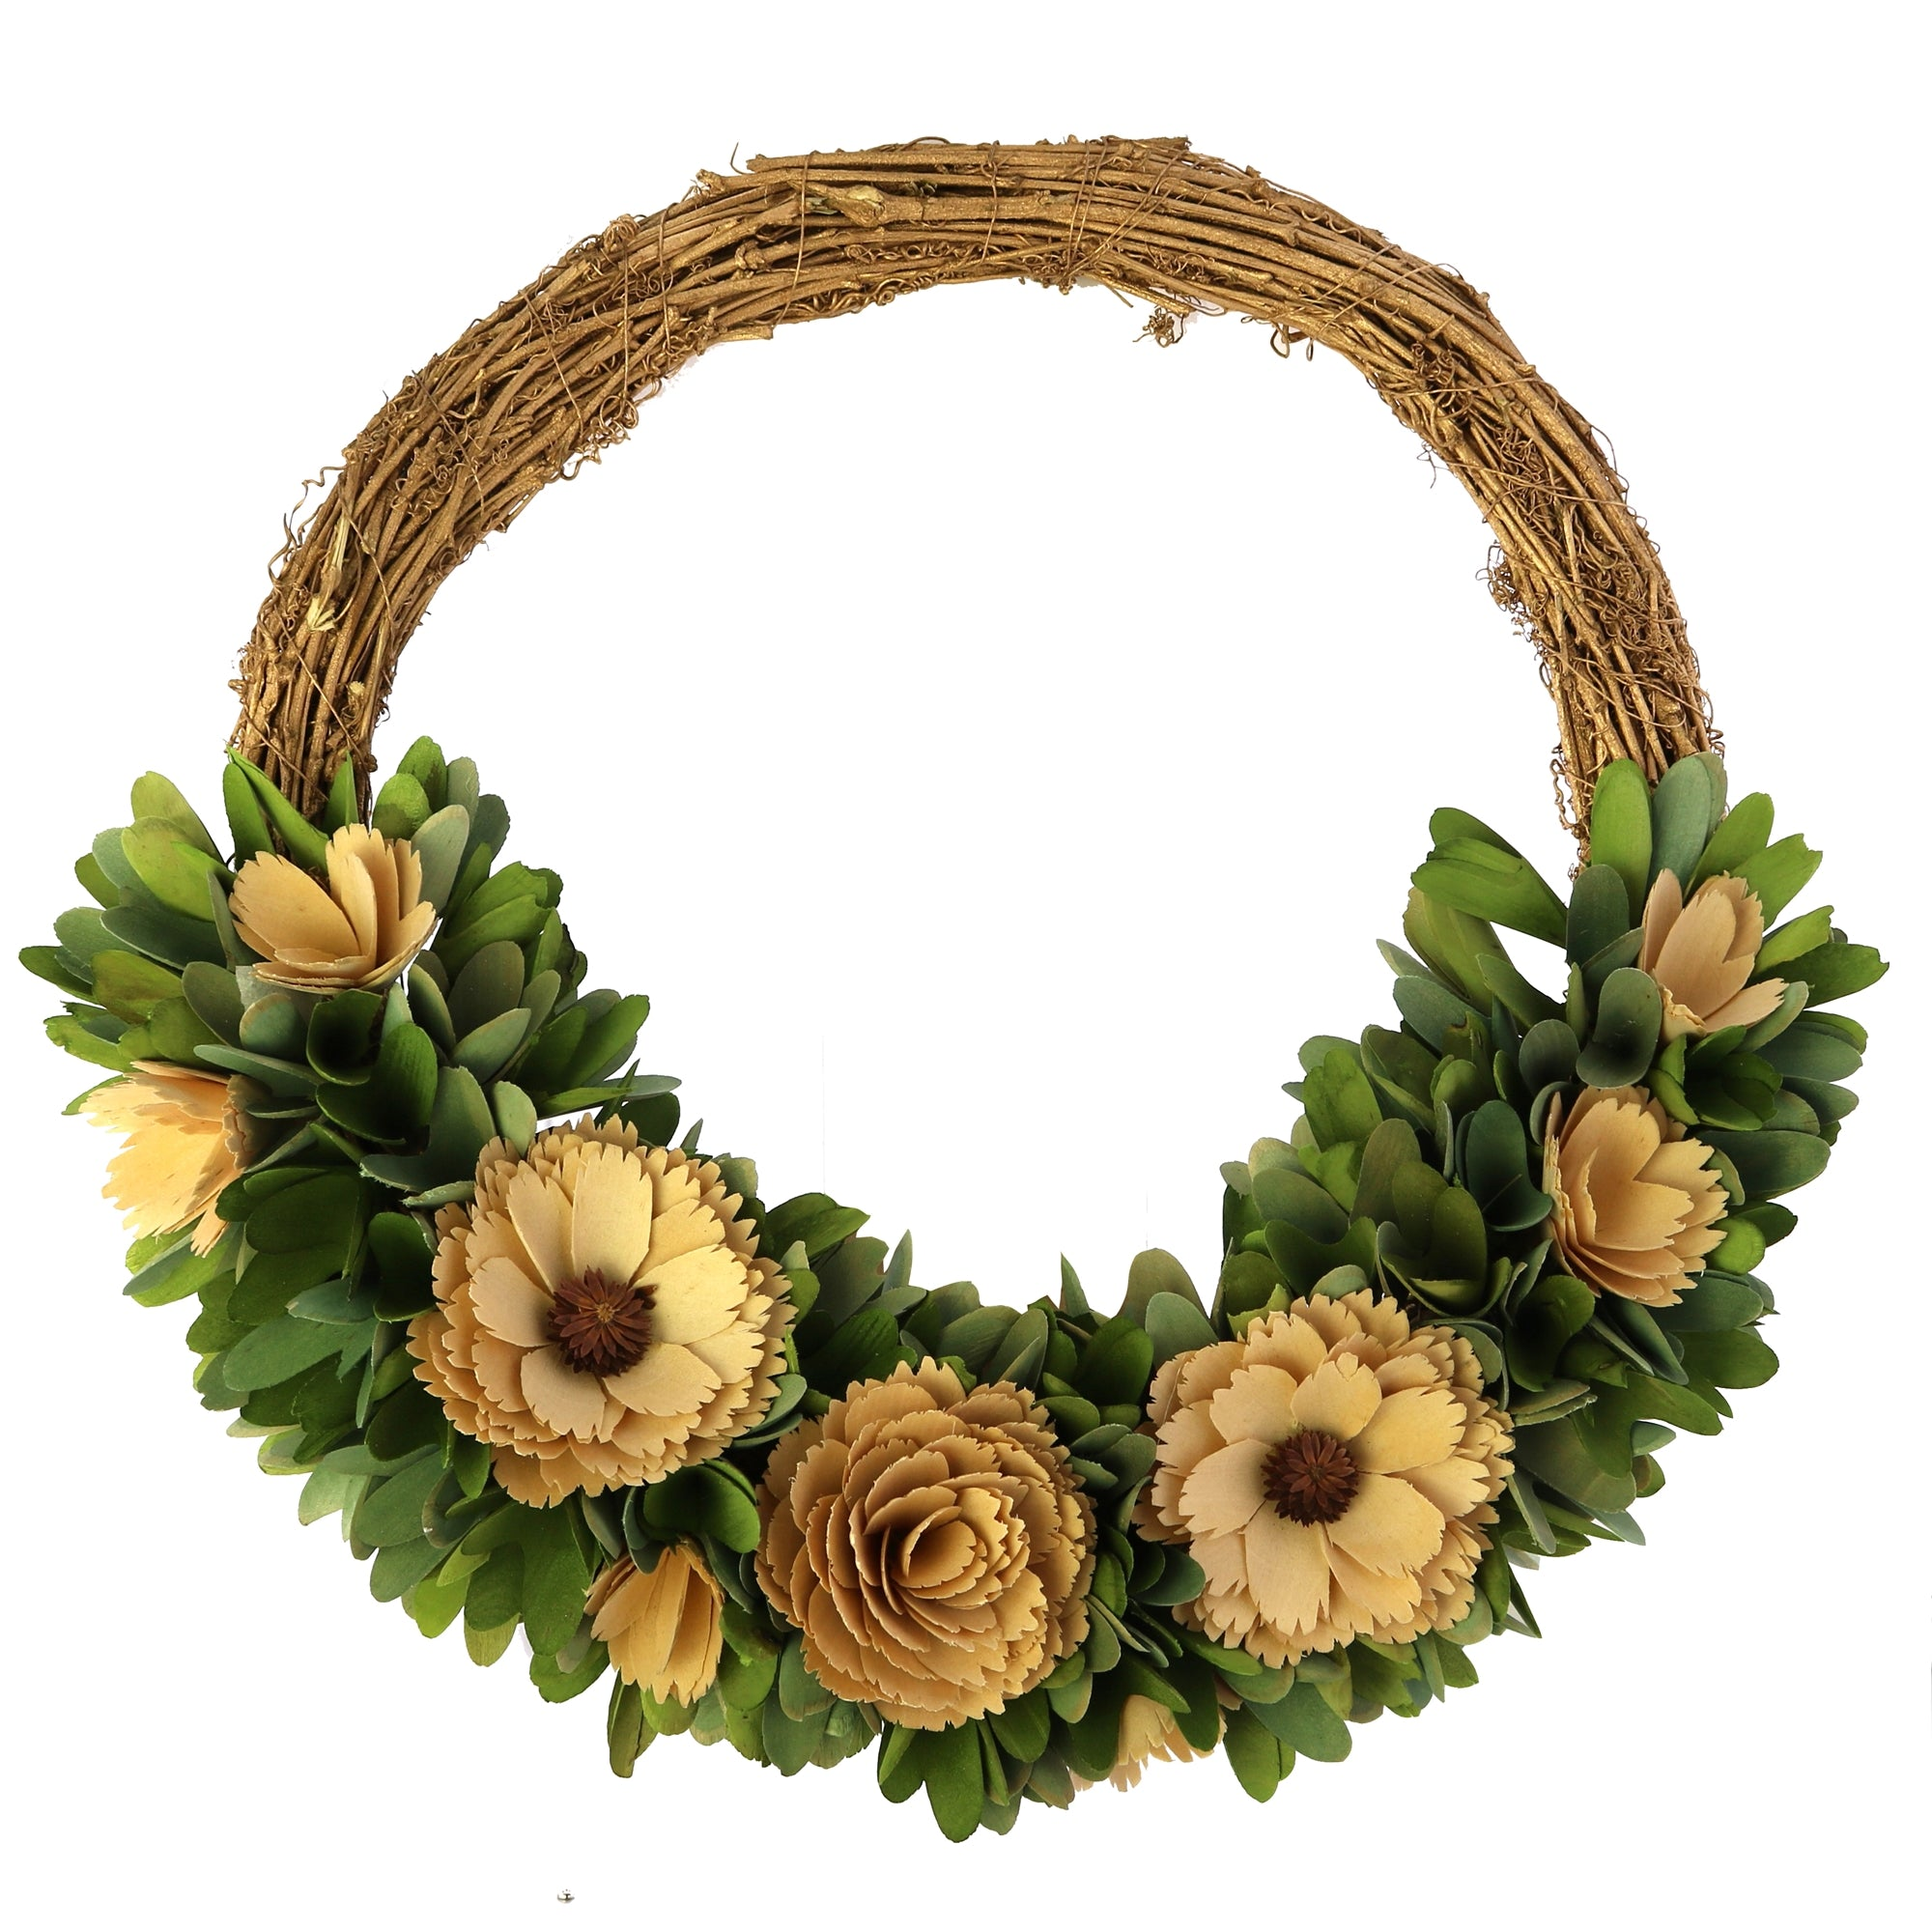 Wood Shaving Wreath - CARLYLE AVENUE